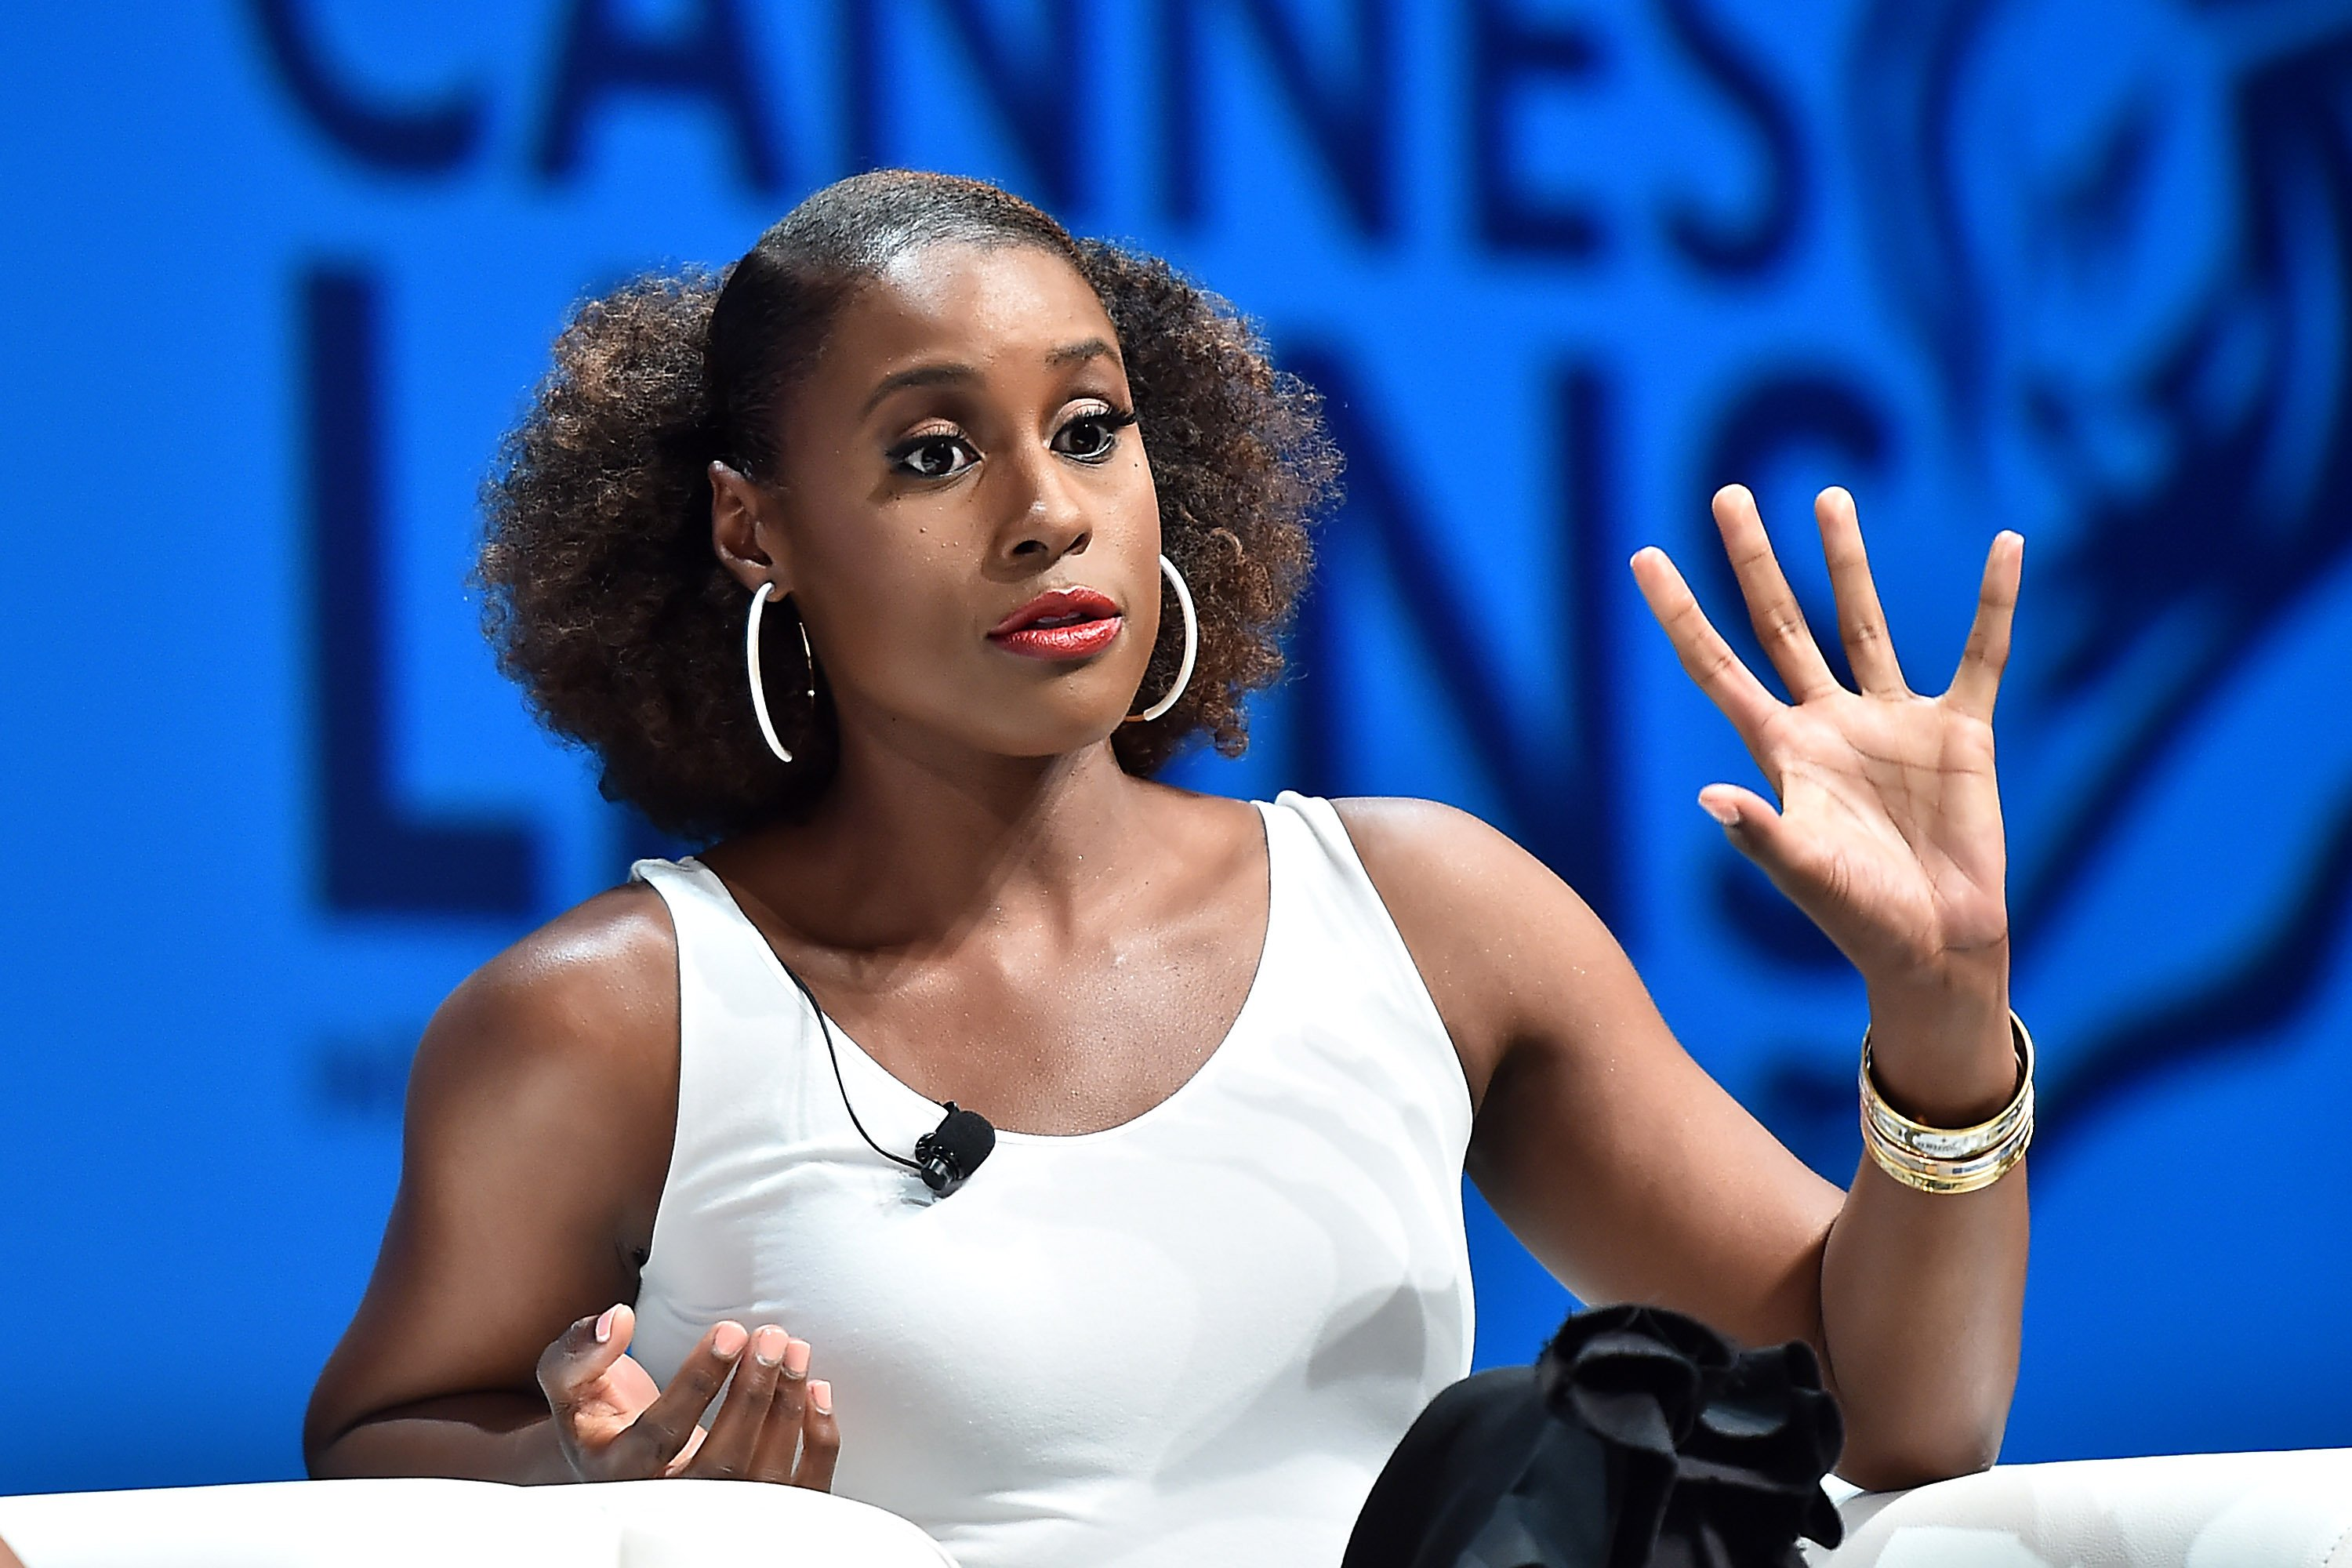 Issa Rae at the Cannes Lions Festival 2018 on June 22, 2018 in Cannes, France | Photo: Getty Images